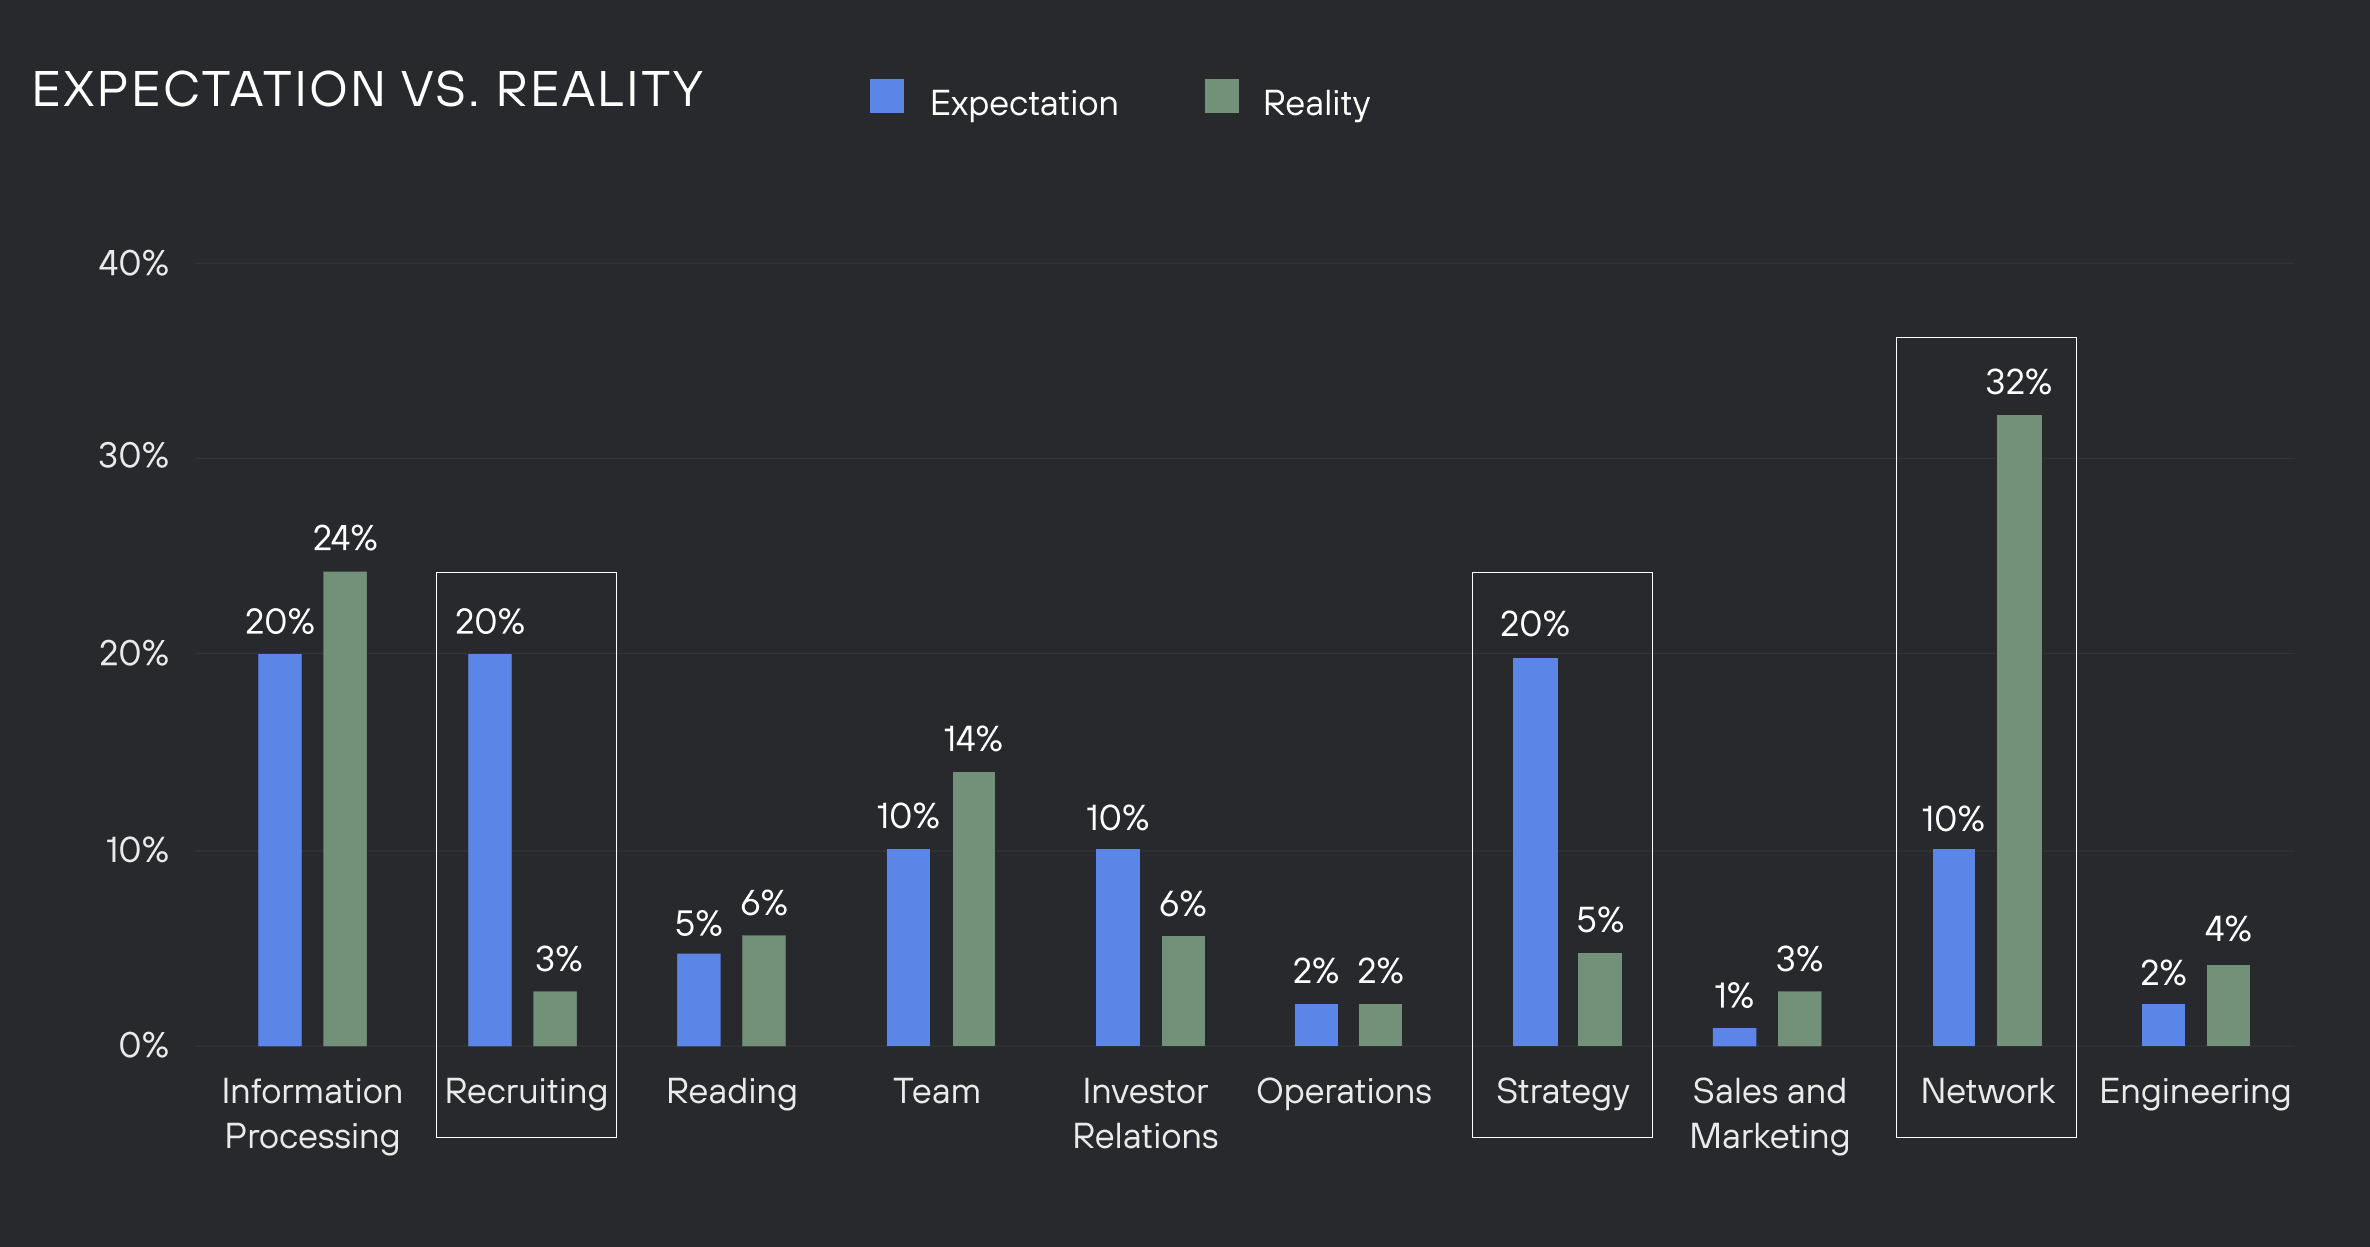 Graph comparing expectation of time spent to reality of time spent